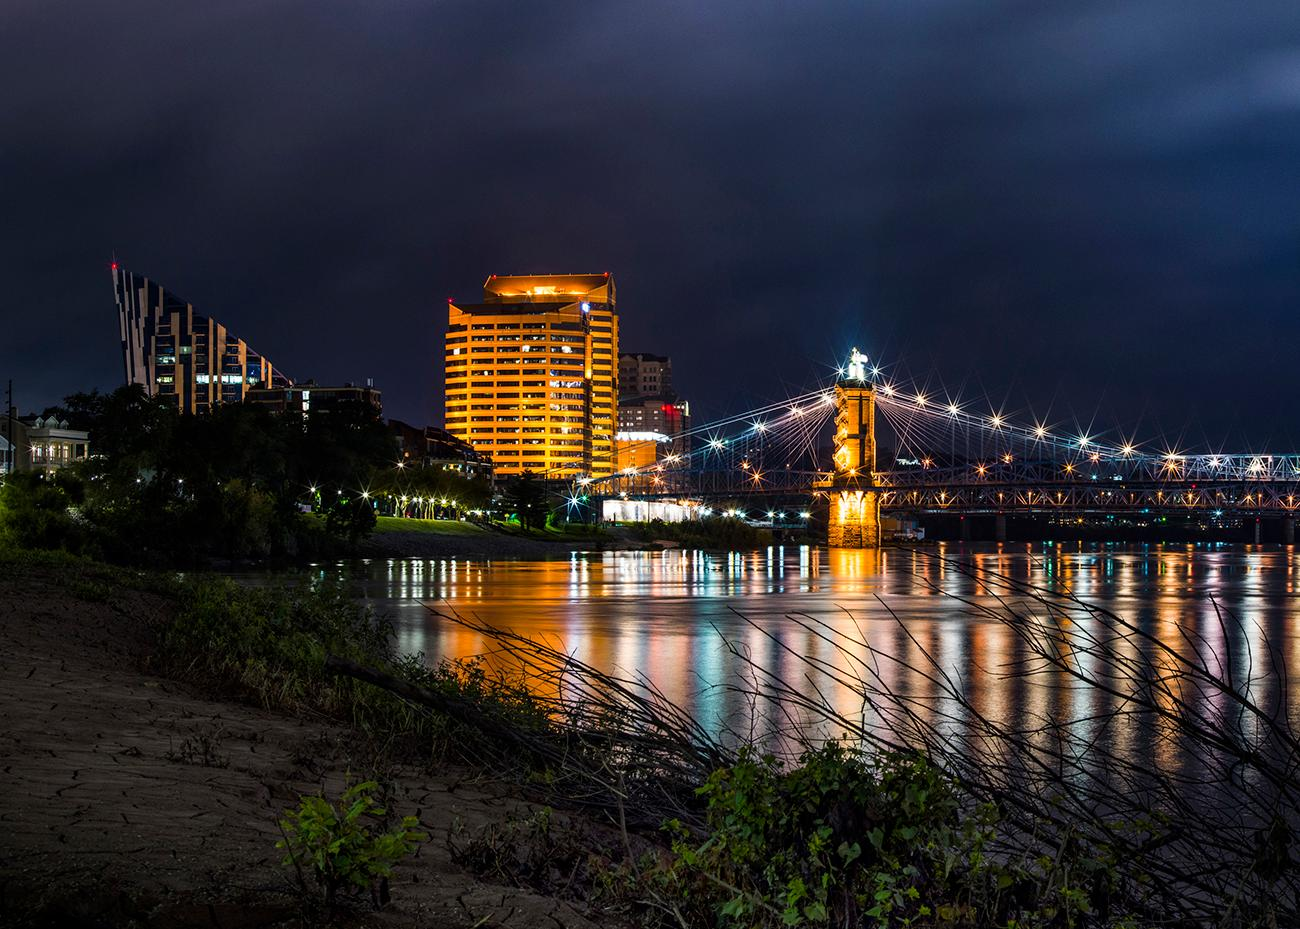 Closeup detail of a panoramic photo of Cincinnati looking west from Kentucky by Chris Ashwell from 2018. View the whole image by going to the Public Library downtown and seeing the Panorama of Progress exhibit. The exhibit runs until October 31. ADDRESS: 800 Vine Street (45202) / Image courtesy of the Public Library of Cincinnati // Published: 10.4.18